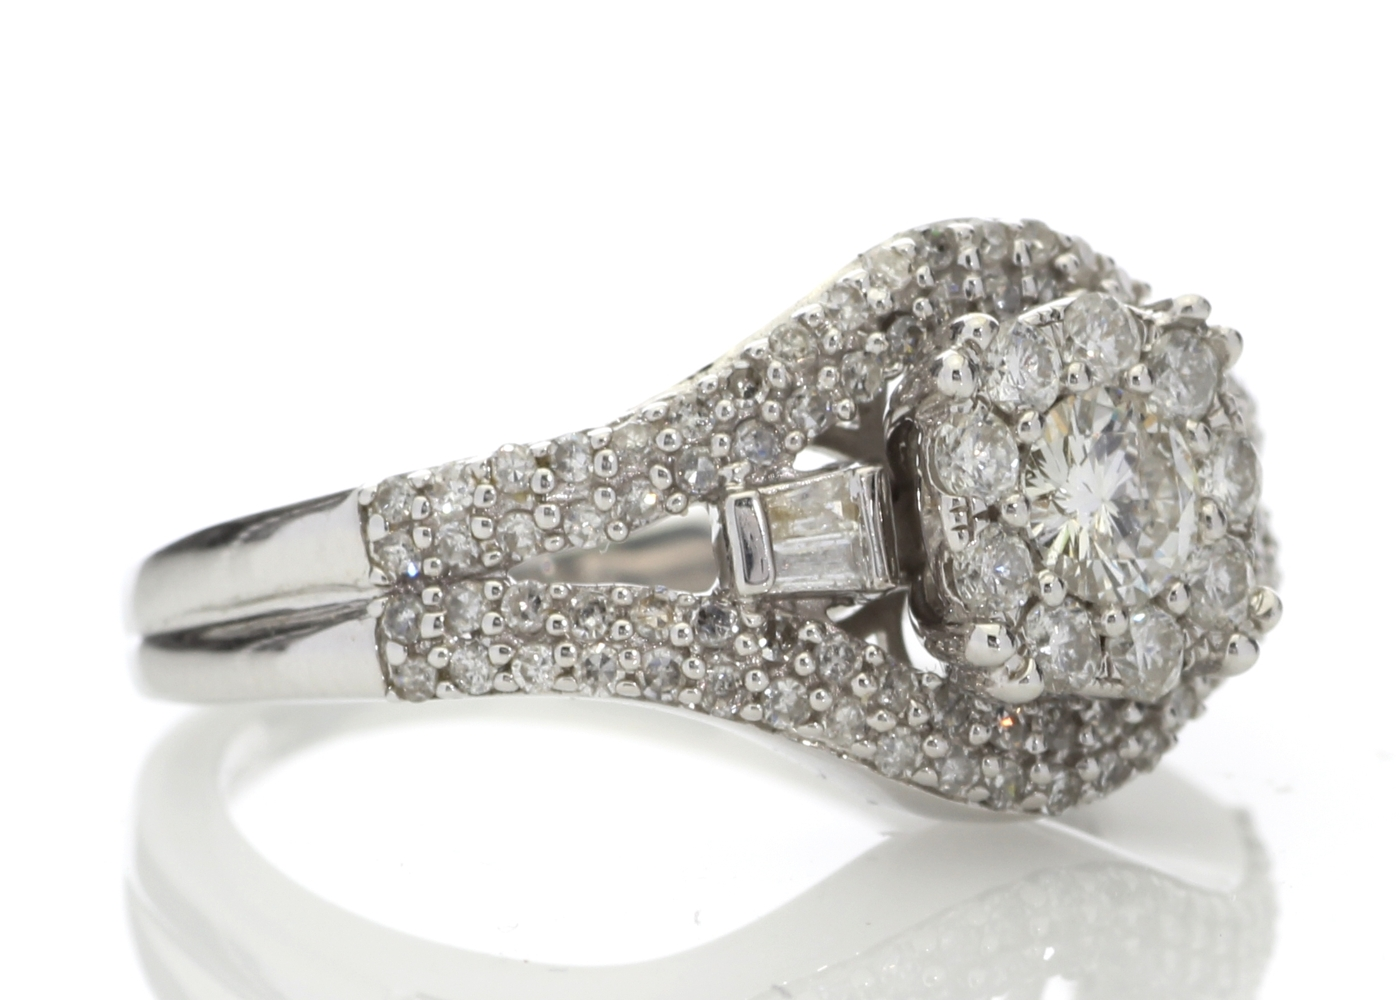 Lot 54 - 9ct White Gold Round Cluster Claw Set Diamond Ring 1.00 Carats